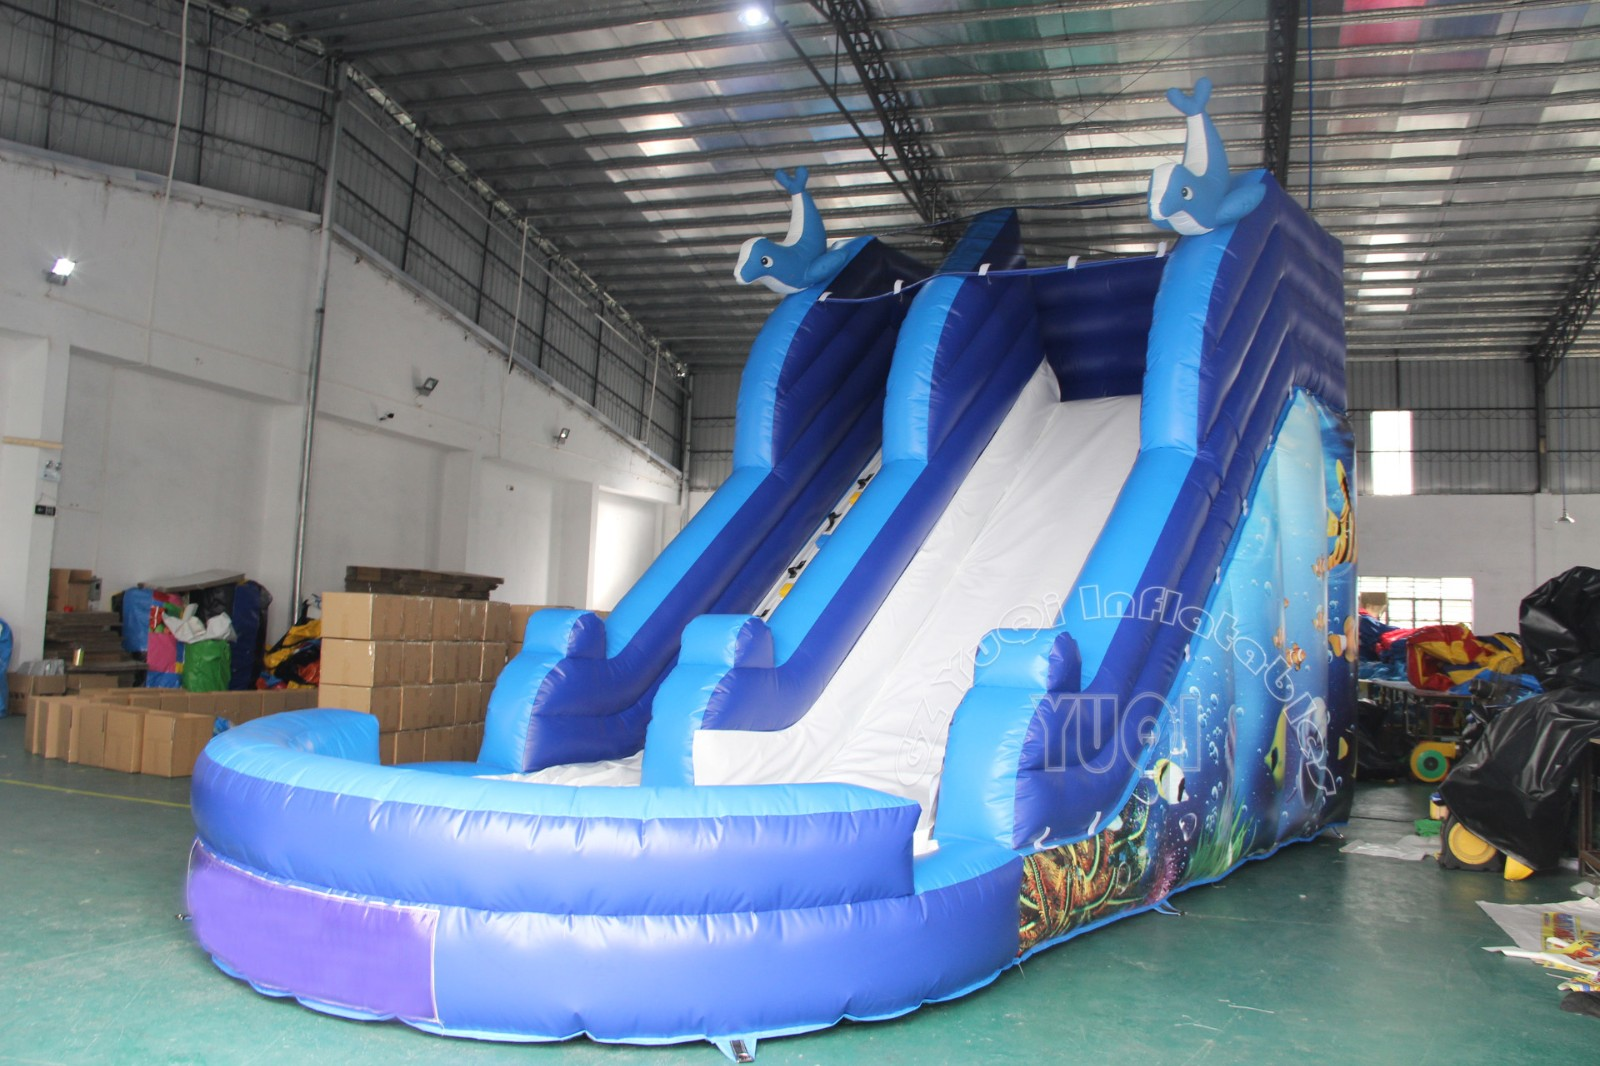 YUQI-Find Yq327 Hot Sale Inflatable Slip And Slide | Manufacture